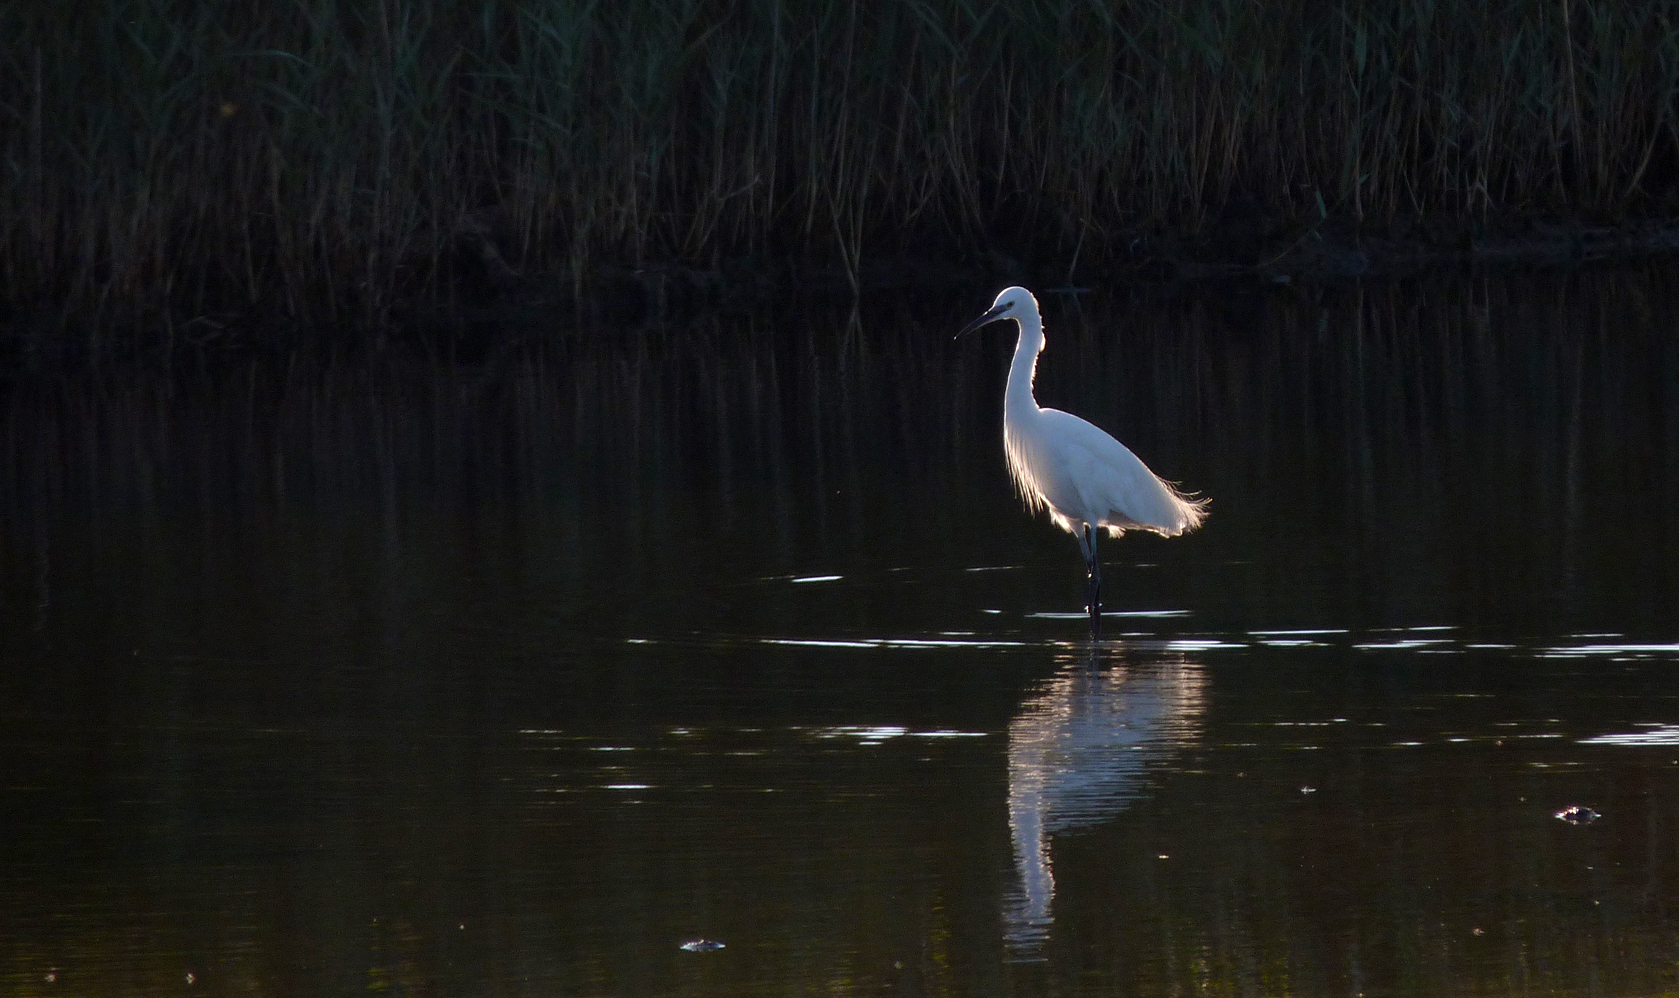 Little Egret at the Claire Mare in August